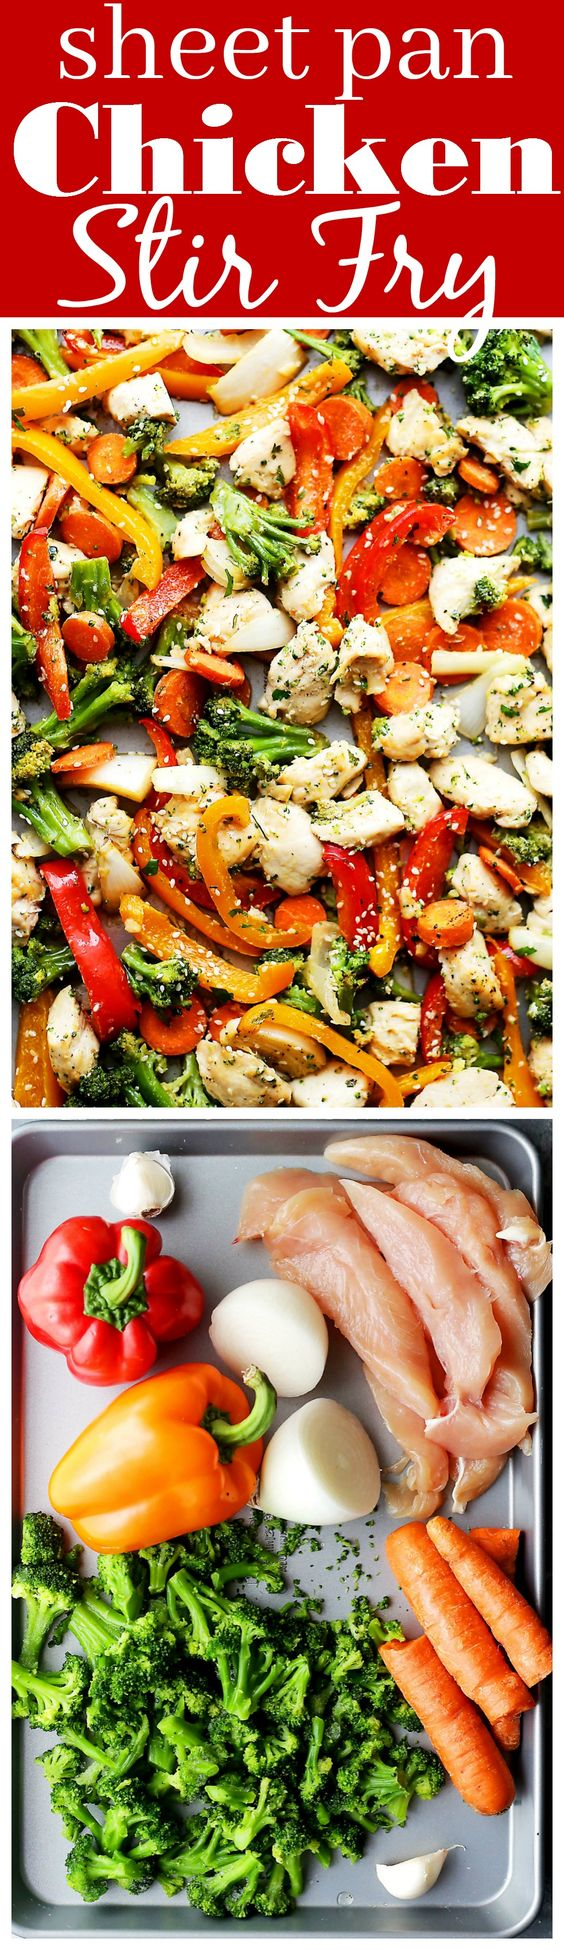 30 Minute Meals Recipes for Easy and Delicious Lunch and Dinner